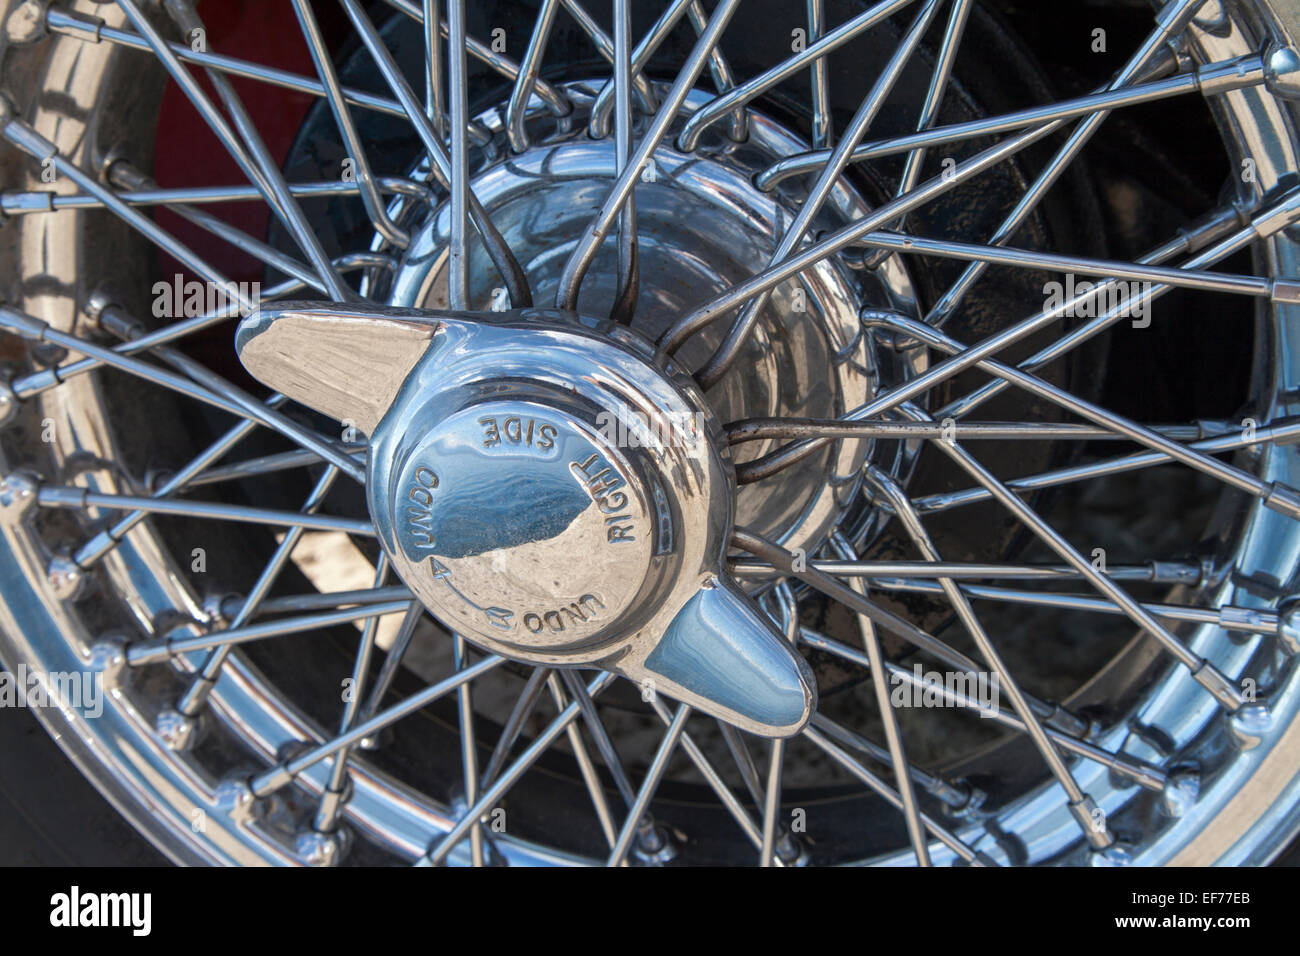 Wire Spoke Wheels Stock Photos & Wire Spoke Wheels Stock Images - Alamy